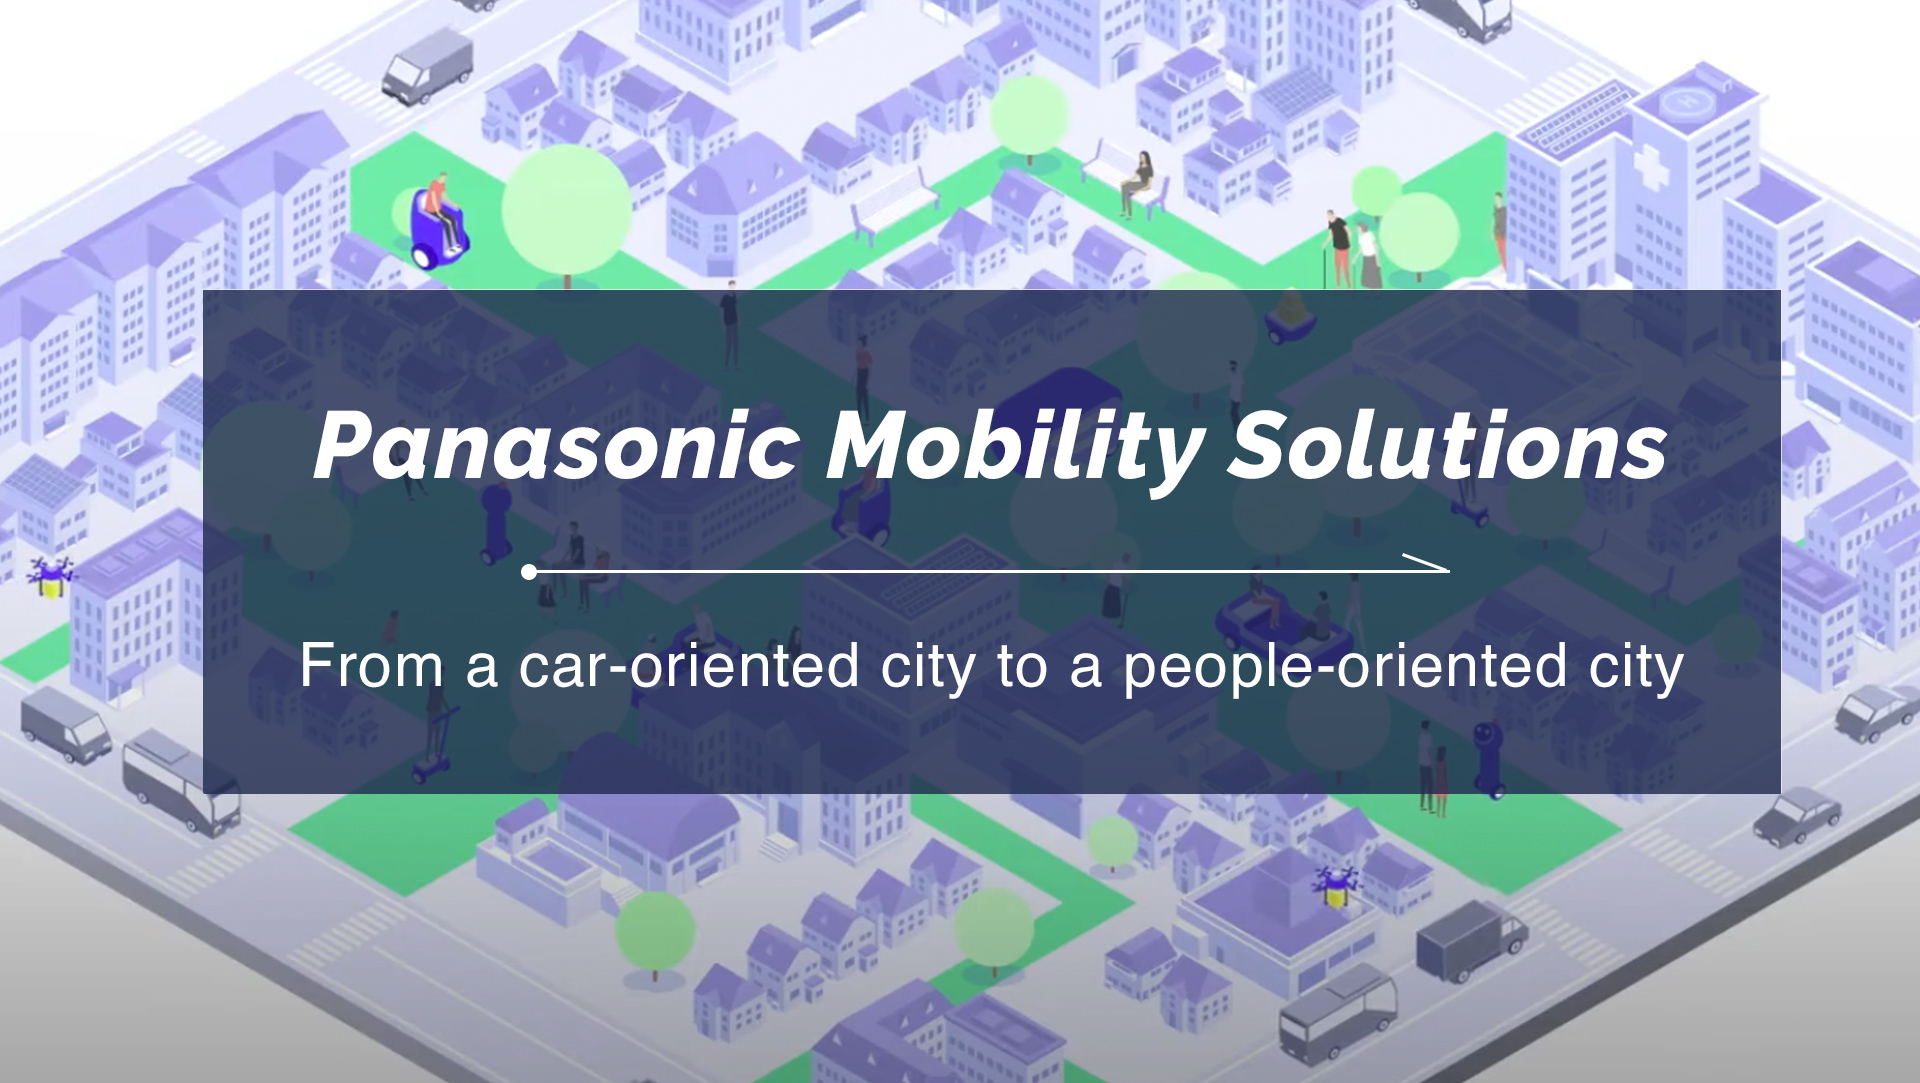 Panasonic Mobility Solutions